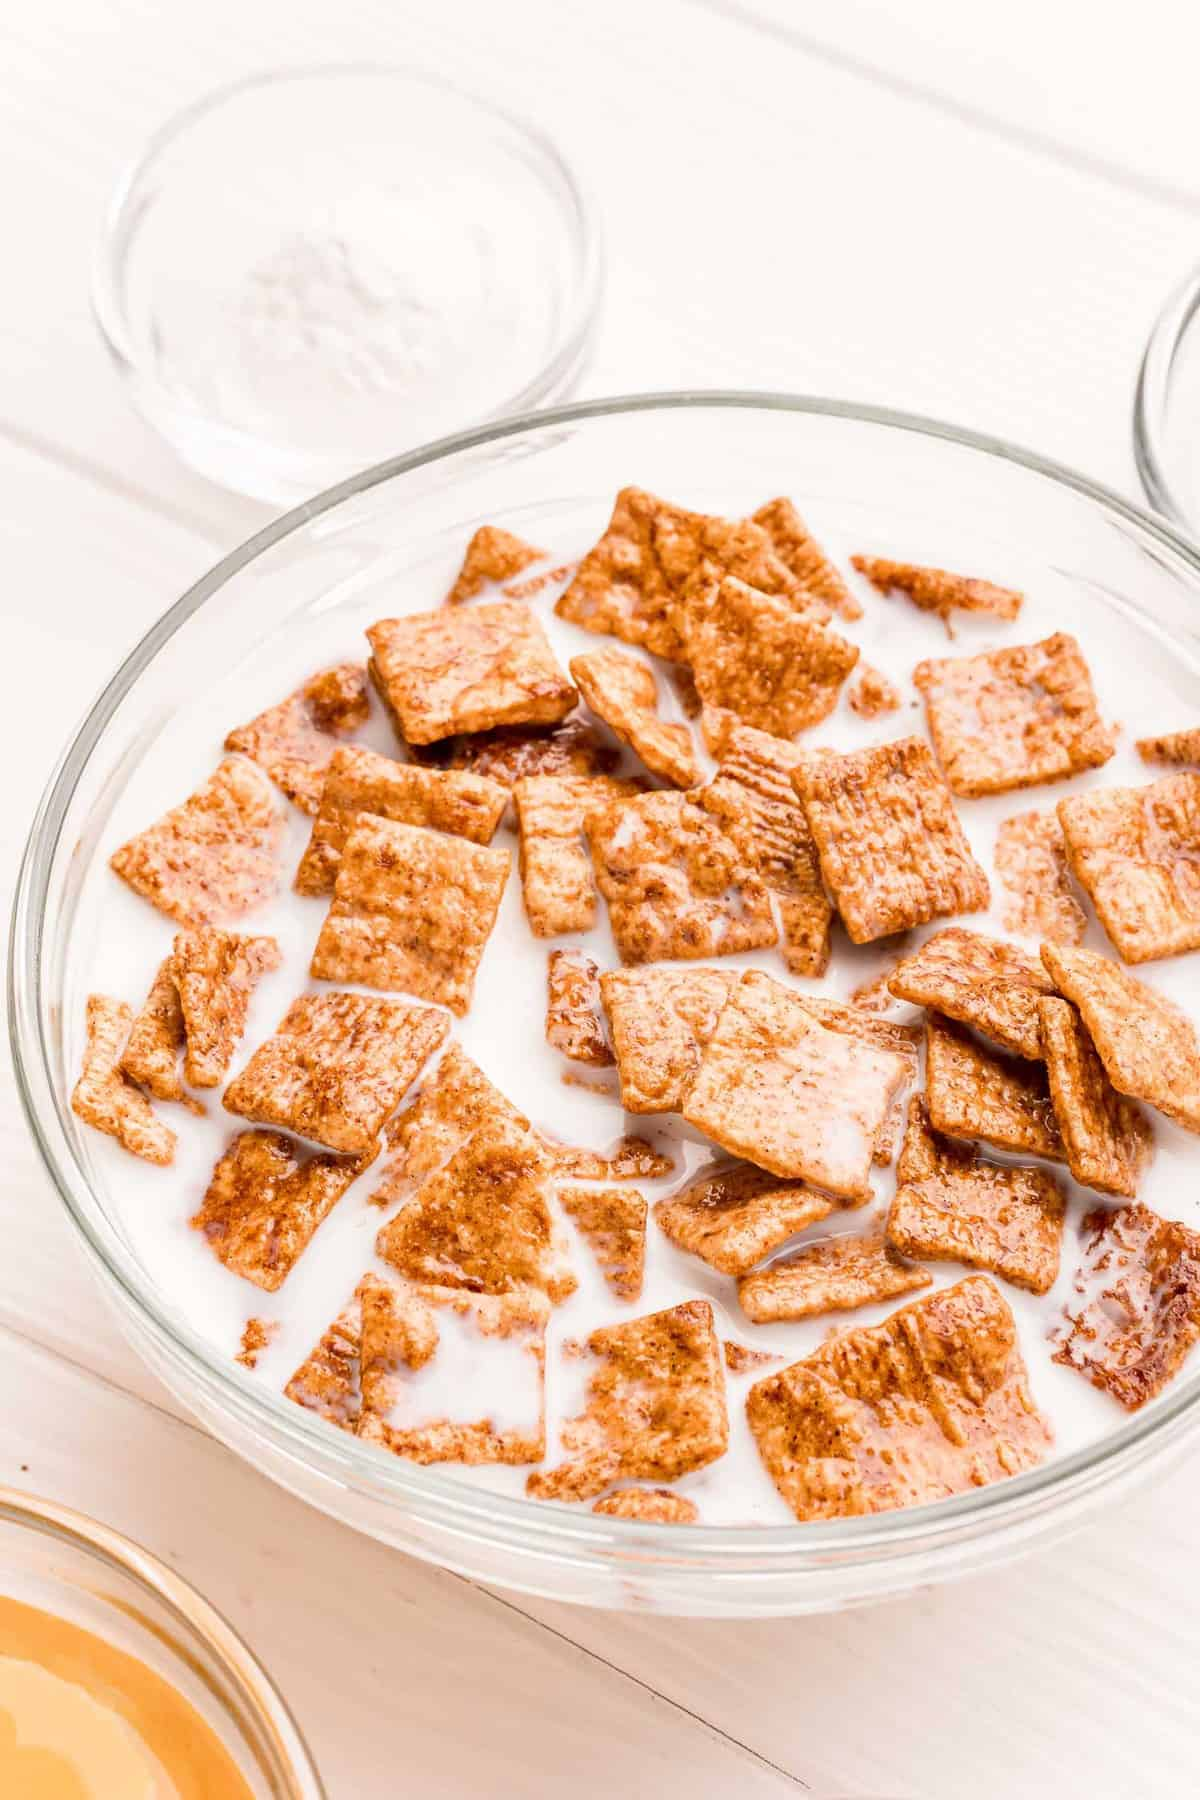 Cereal soaking in a bowl of milk.